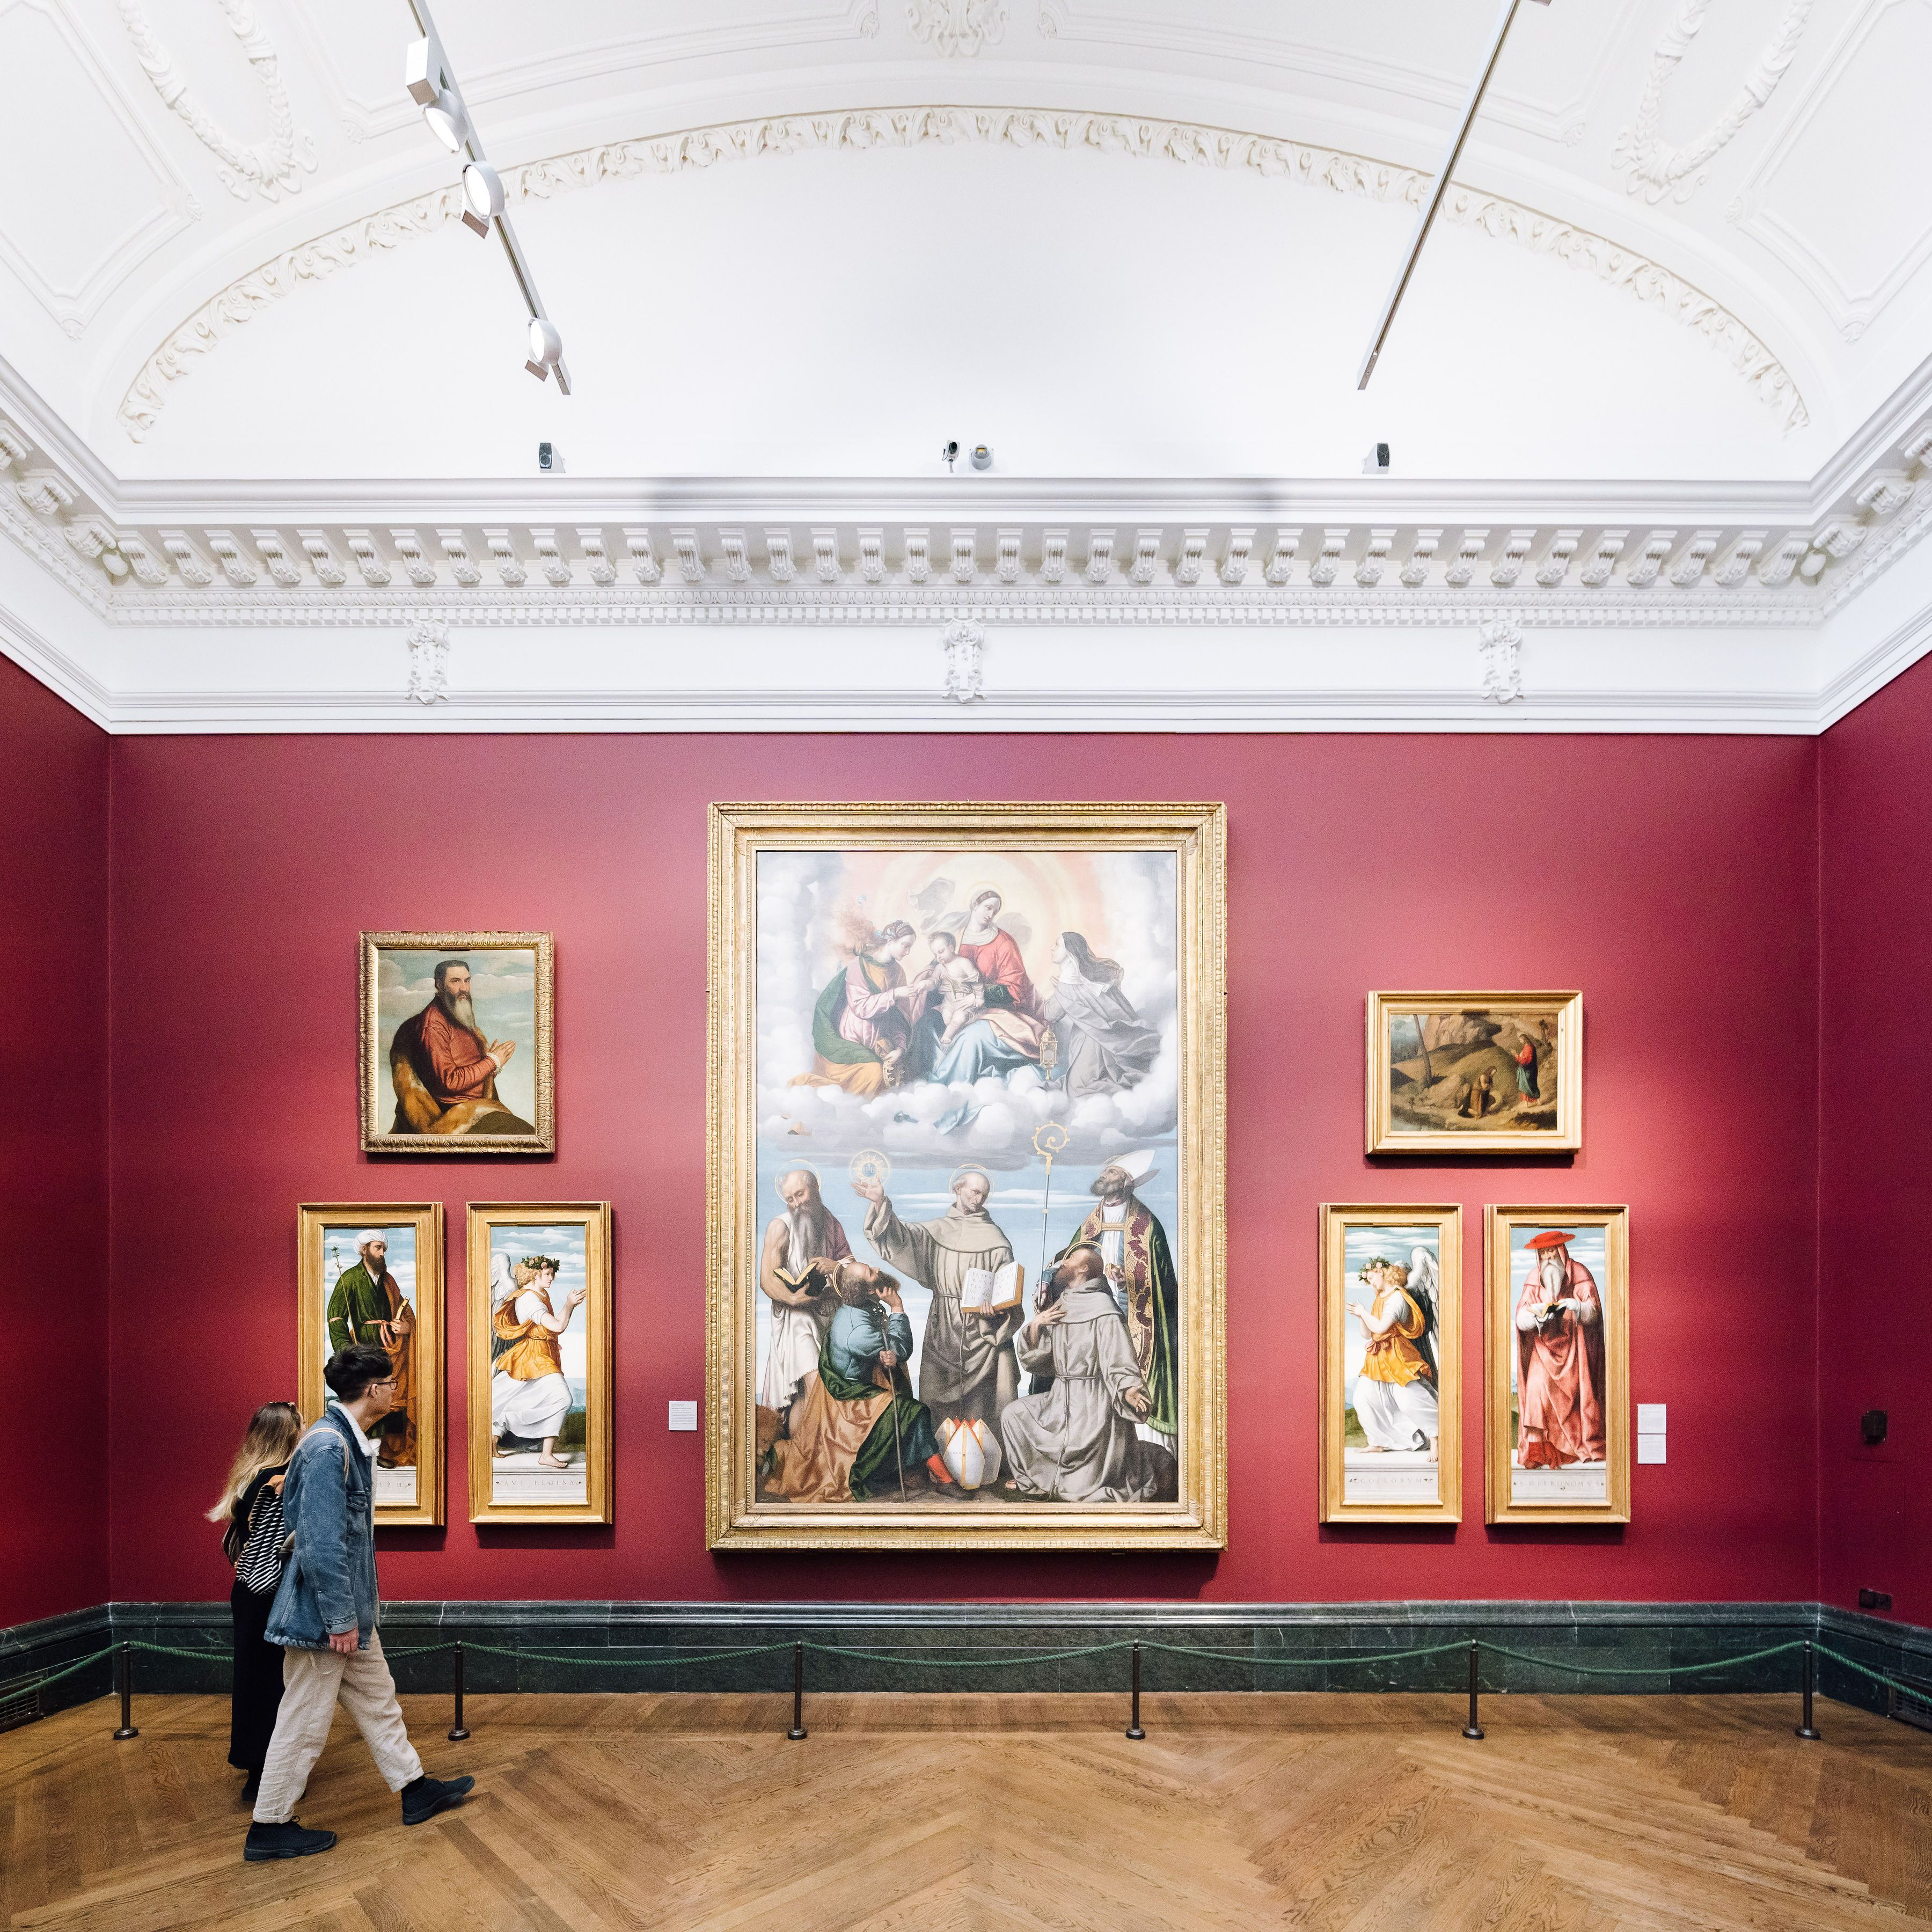 People observing art in a museum